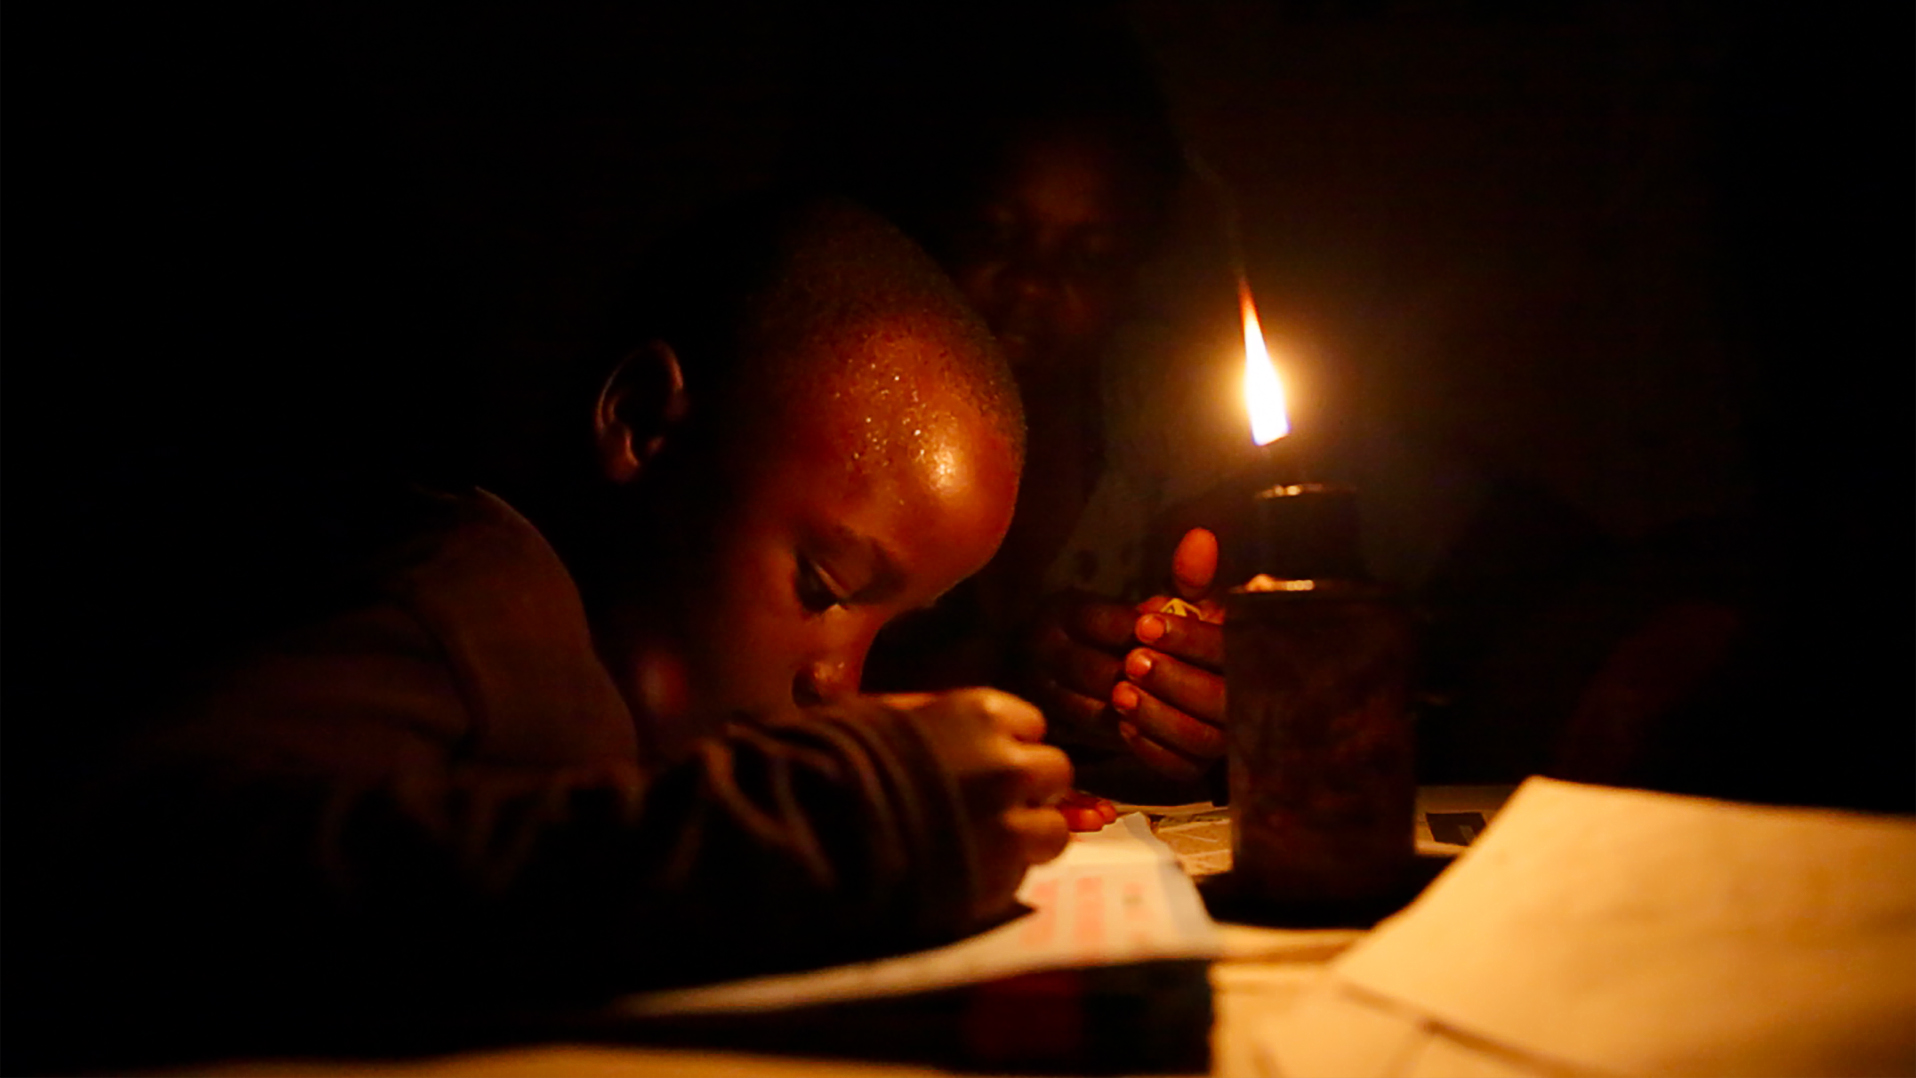 Image of a boy reading using the light of a kerosene lamp.